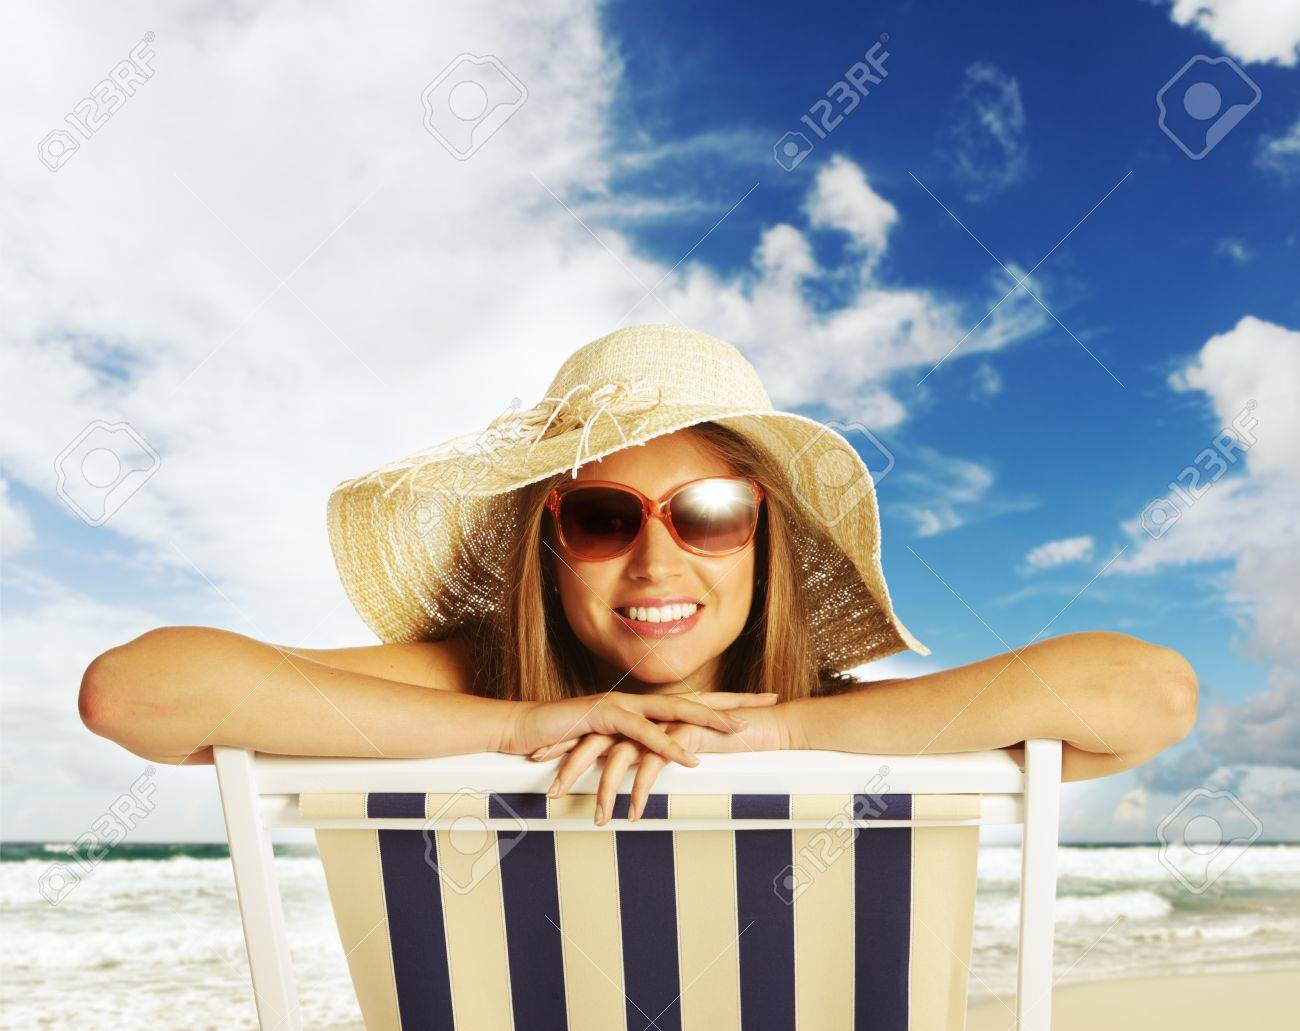 Beautiful young woman relaxing on beach chair Stock Photo - 18057379